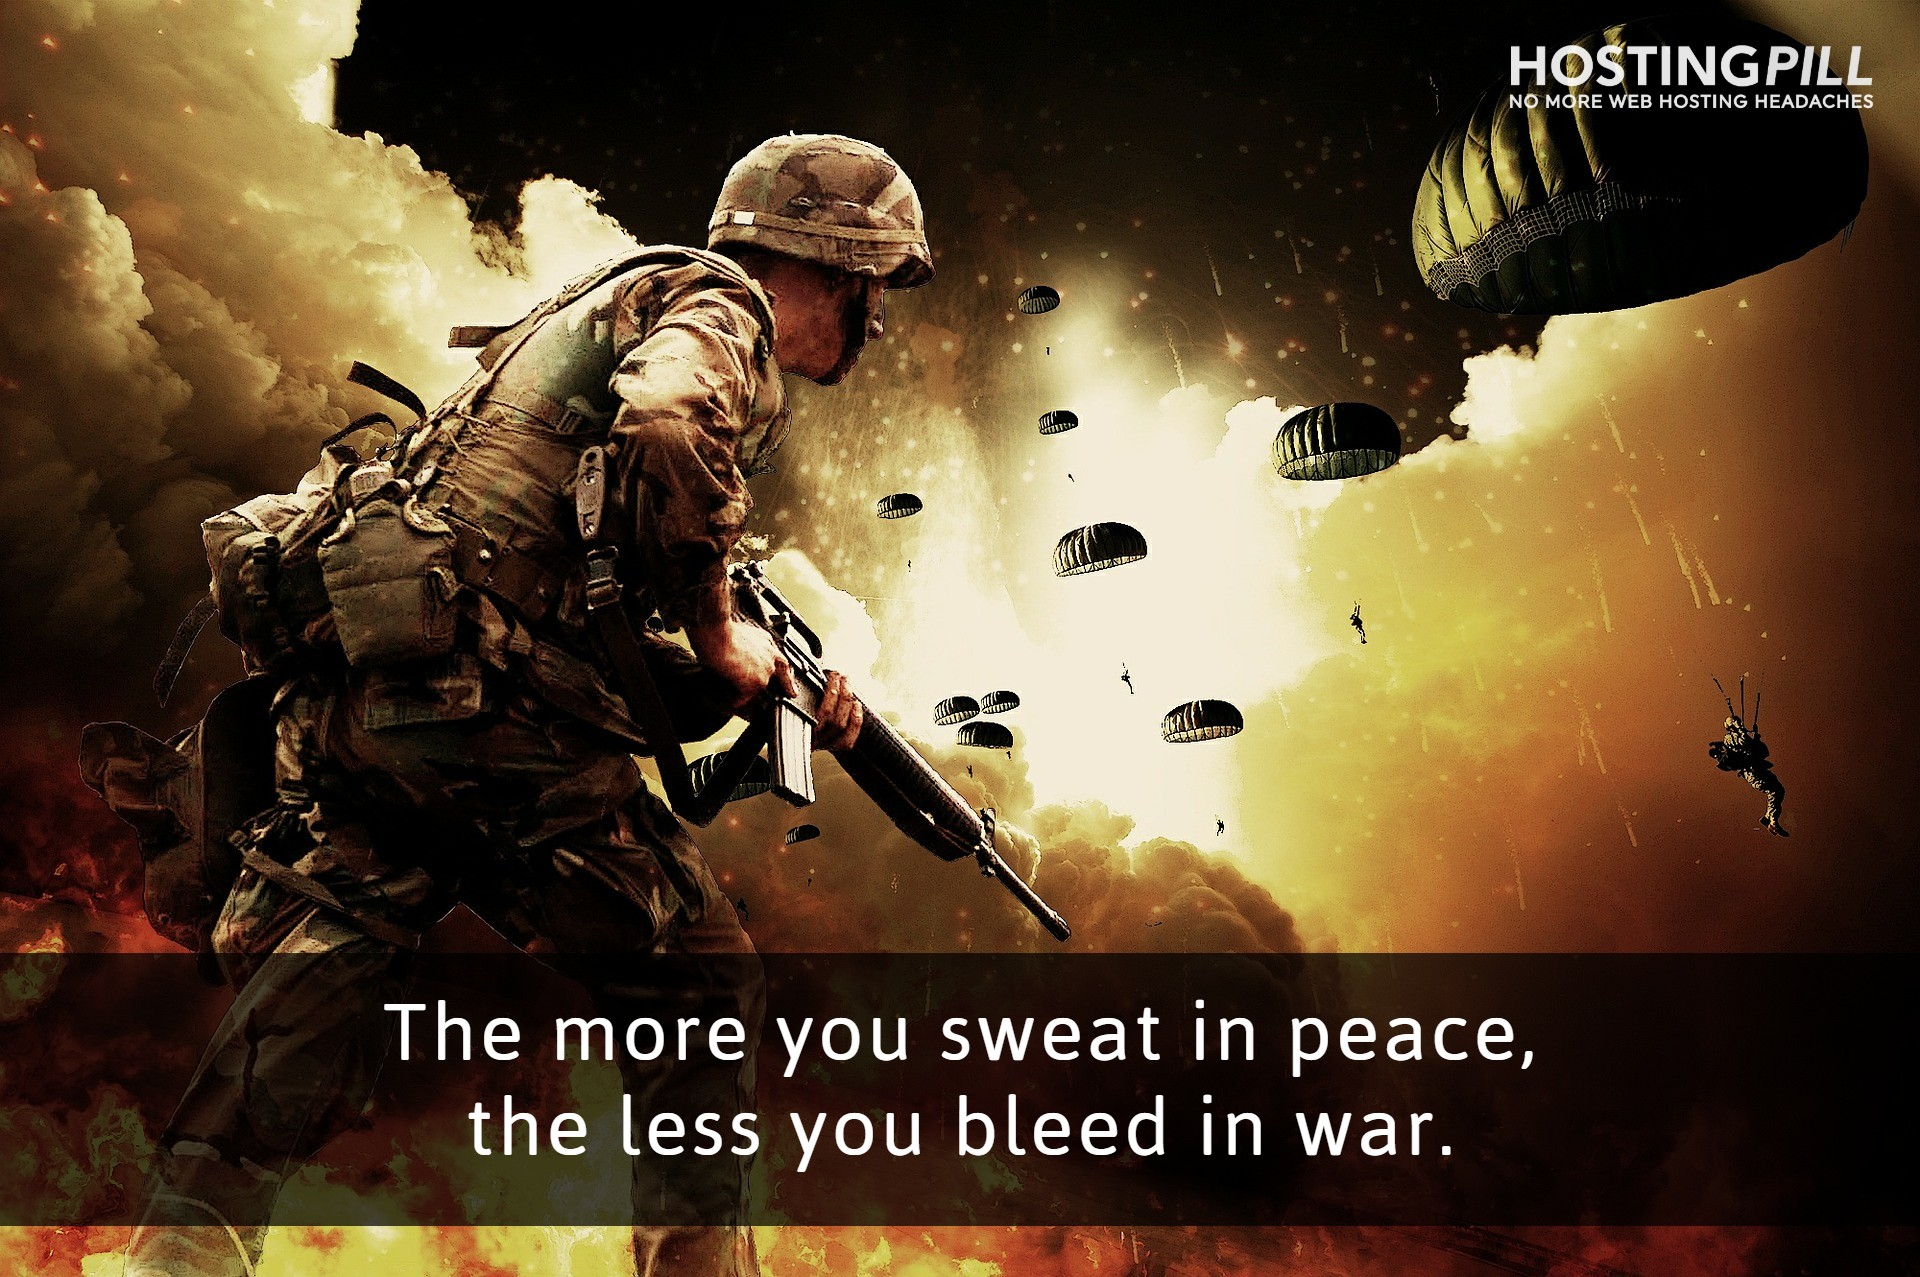 The more you sweat in peace, the less you bleed in war. - John. F. Kennedy